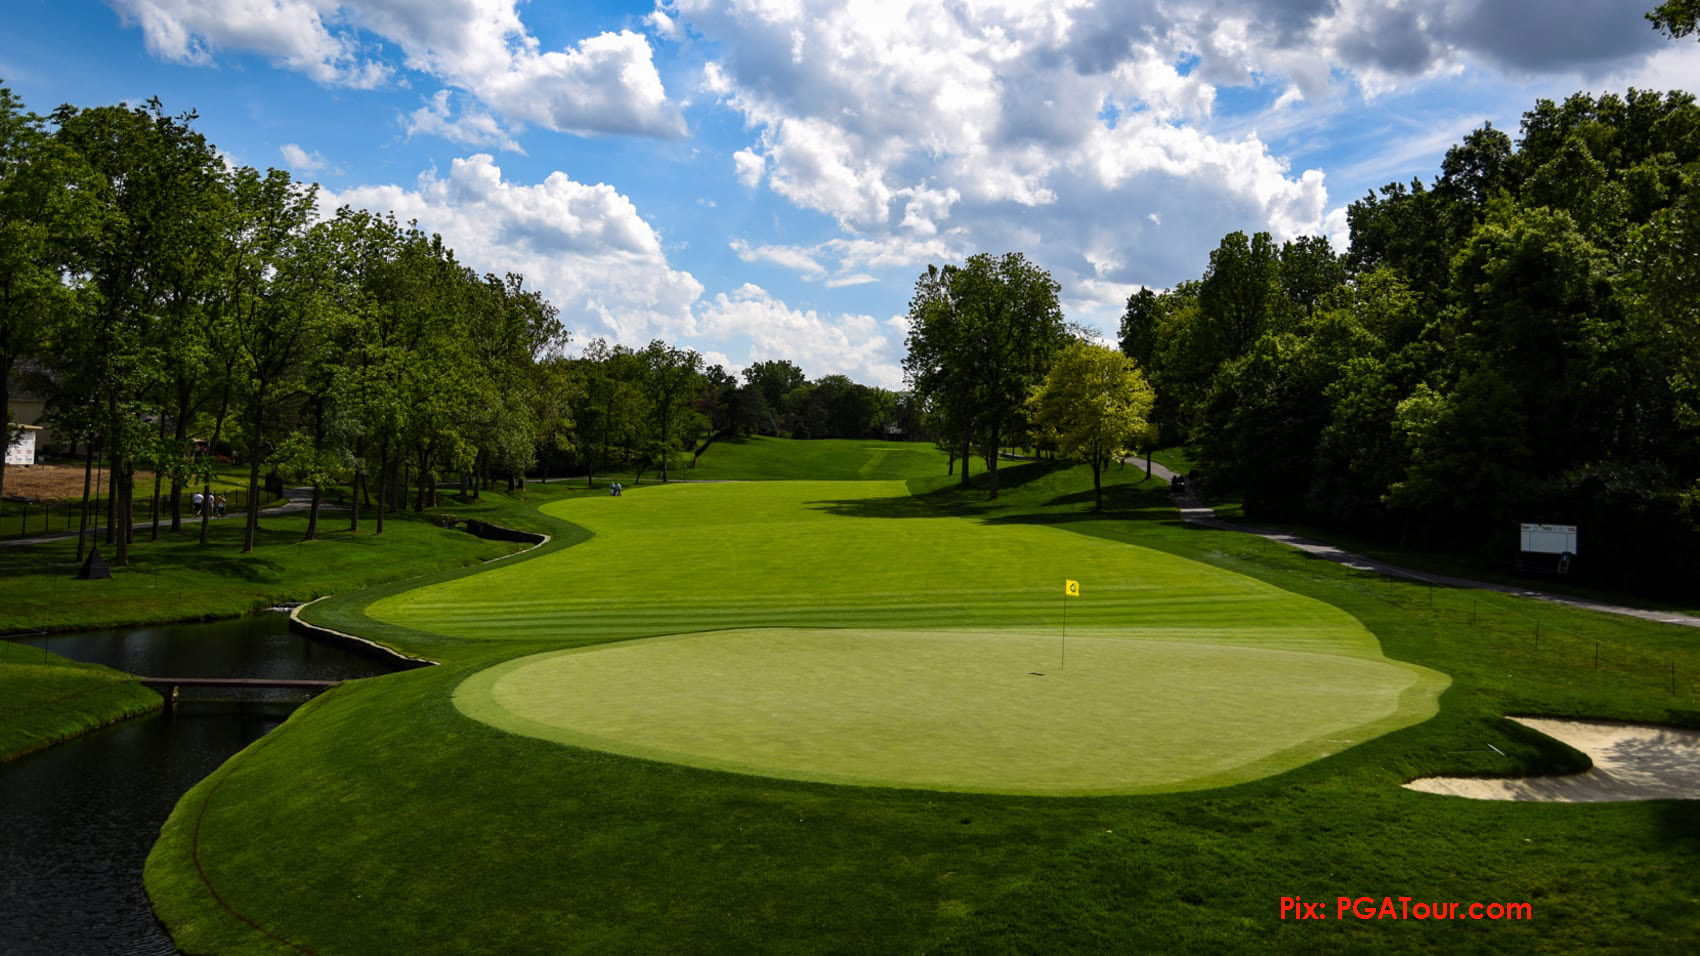 PGA Tour finds replacement for John Deere Classic, schedules double-header at Muirfield